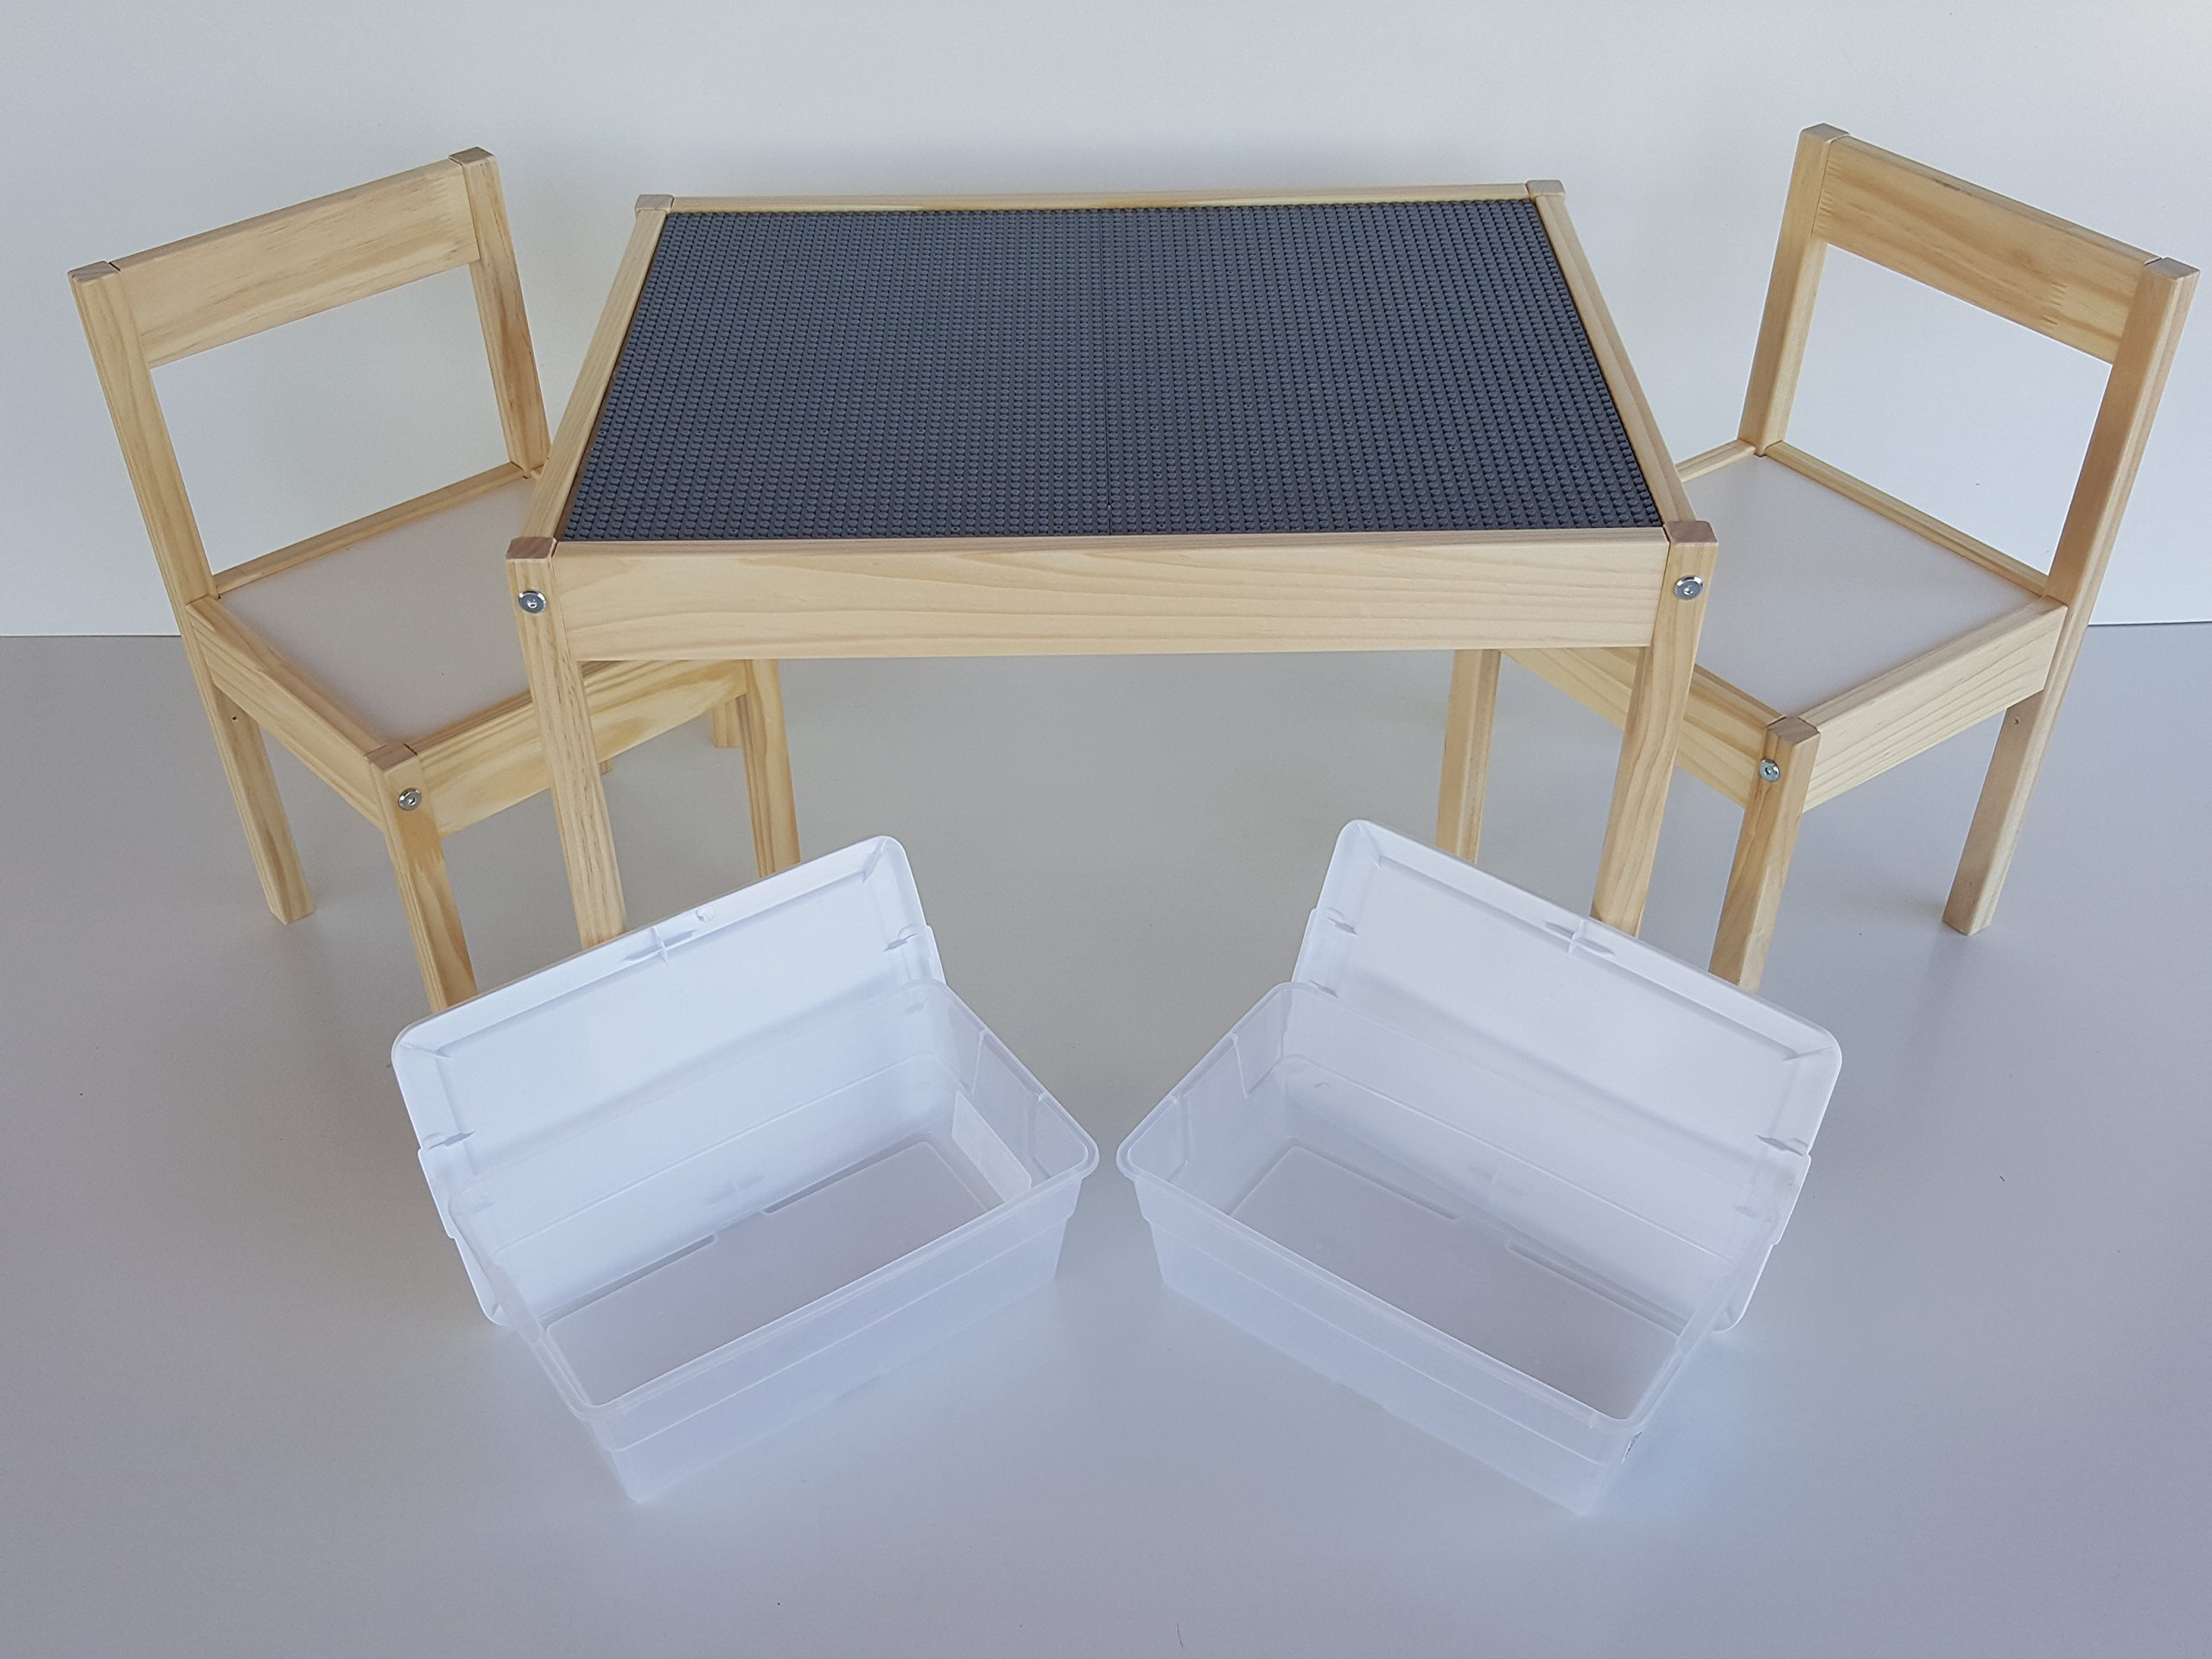 Deluxe Large Grey Lego Table - Includes chairs and 2 storage bins